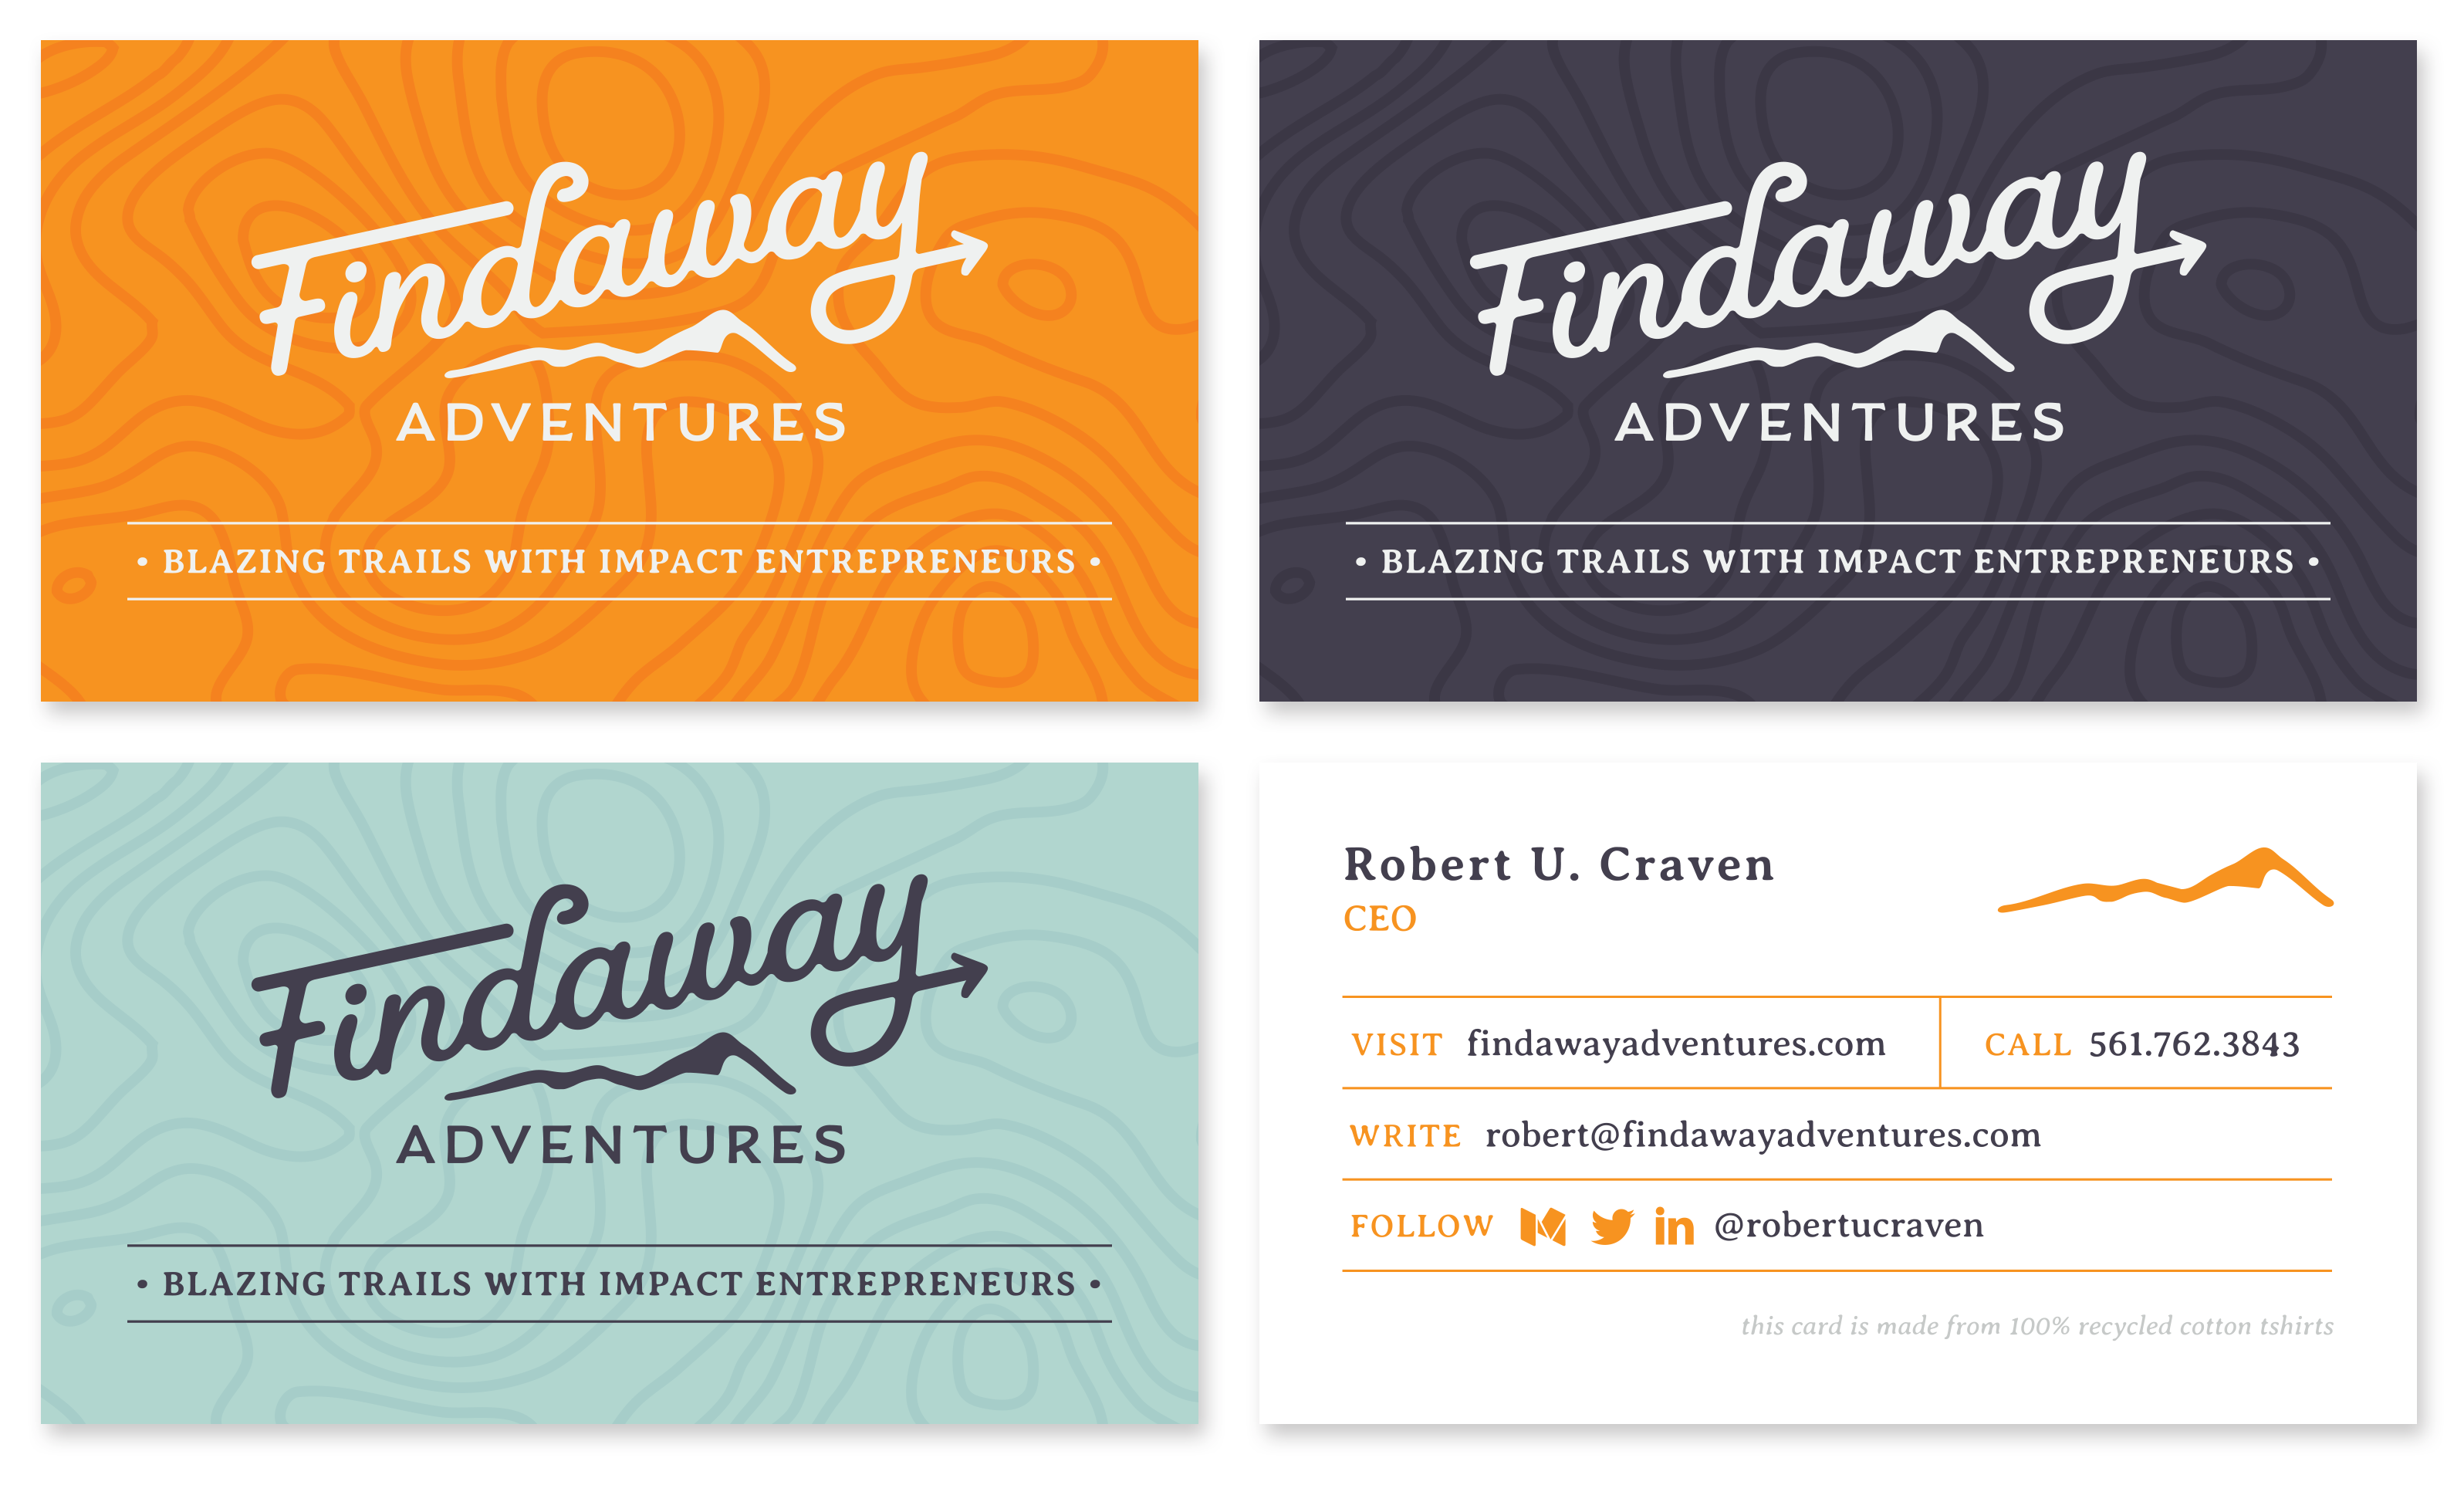 Findaway Adventures Business Card (Fronts and Back)